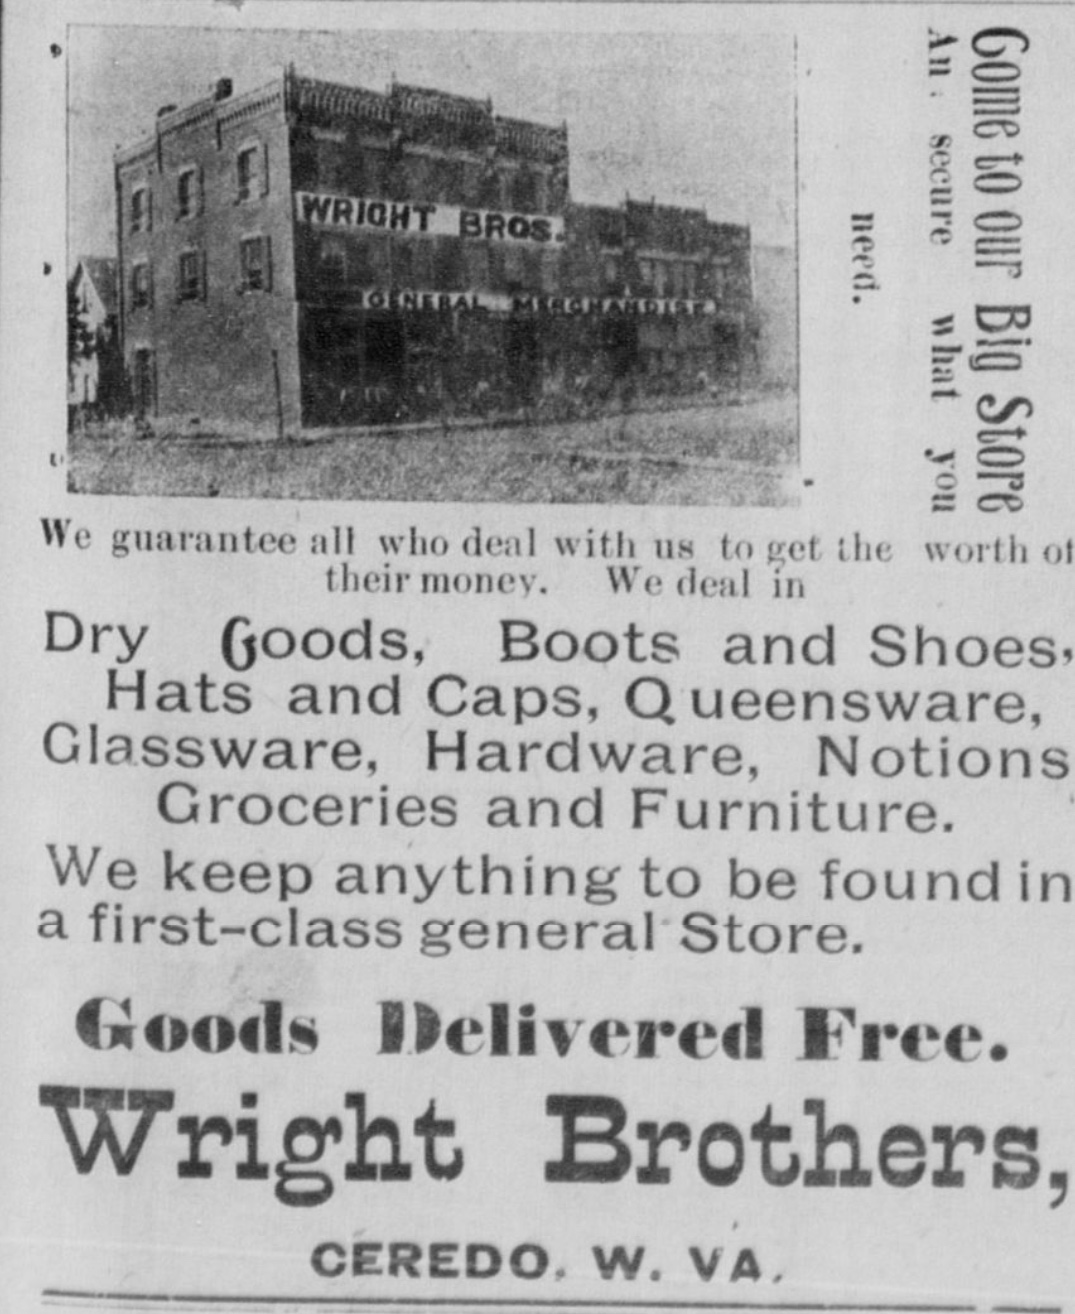 Early advertisement for the Wright Brothers Store in the Ceredo Advance newspaper, June 1898.